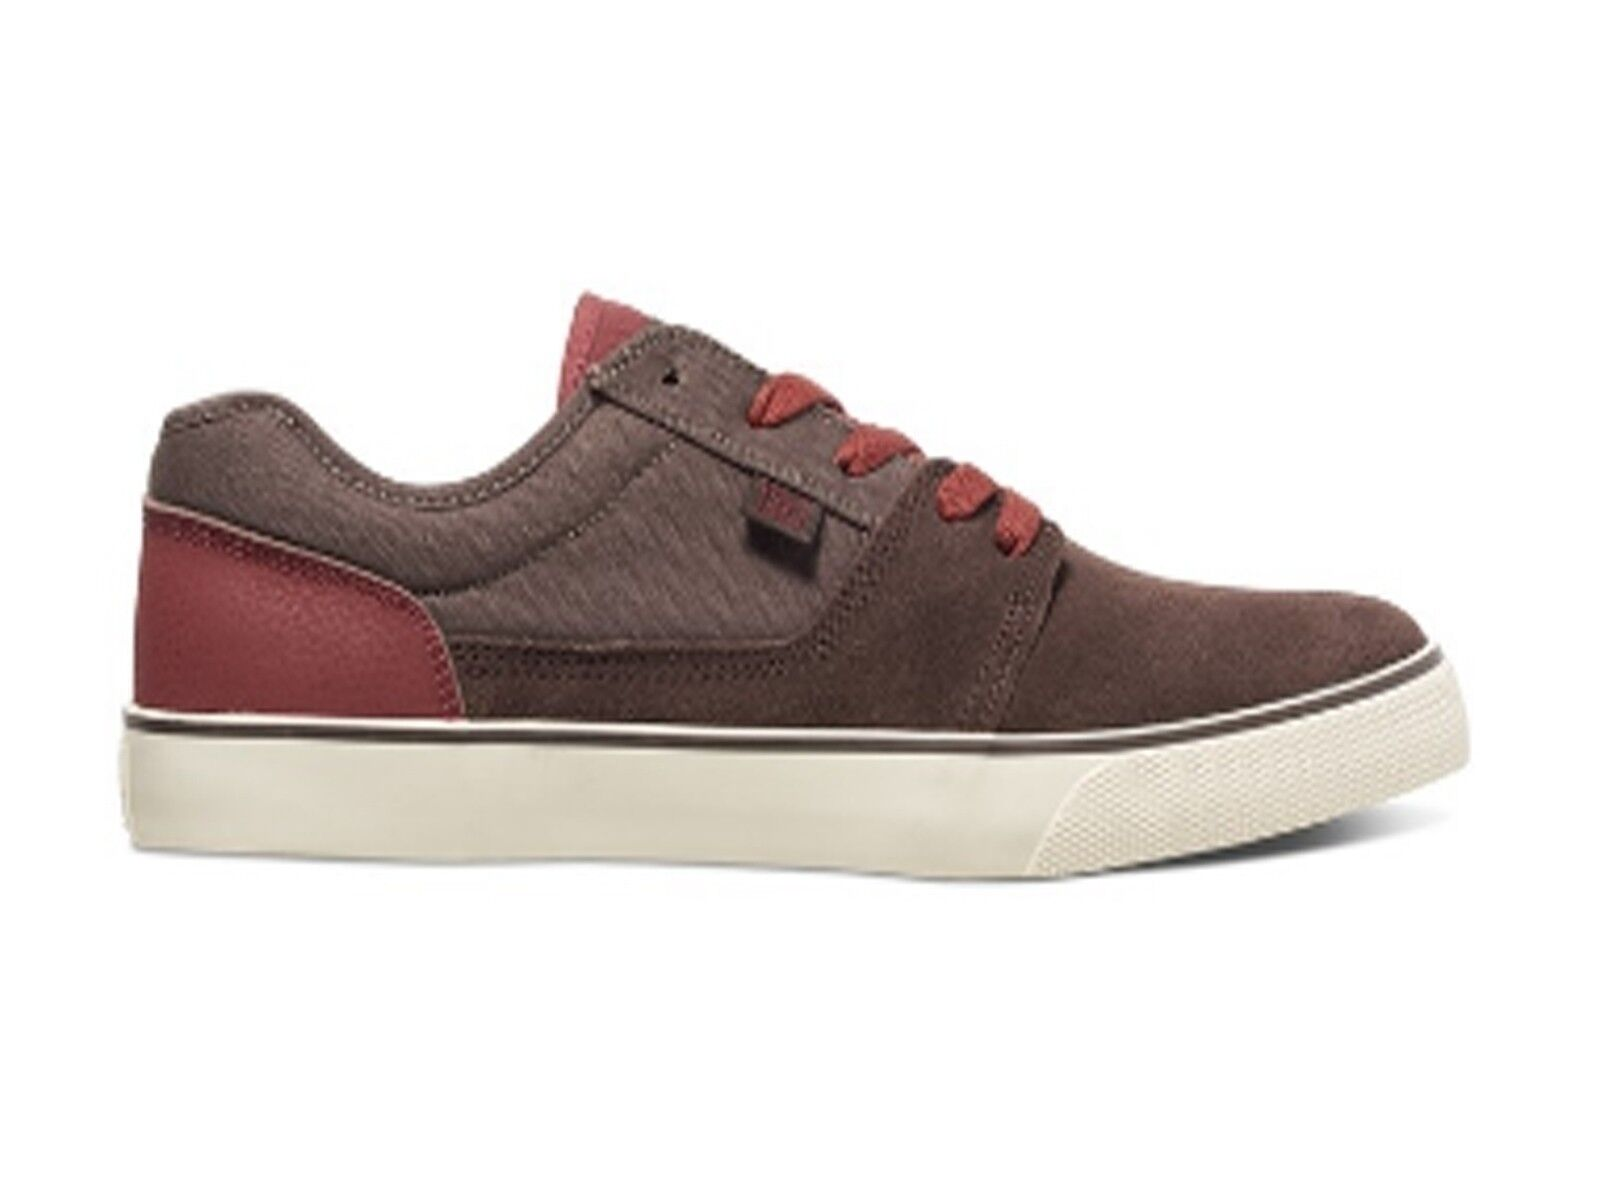 zapatos hombres DC  302905 DKX  TONIK DK CHOCOLATE OX BLOOD